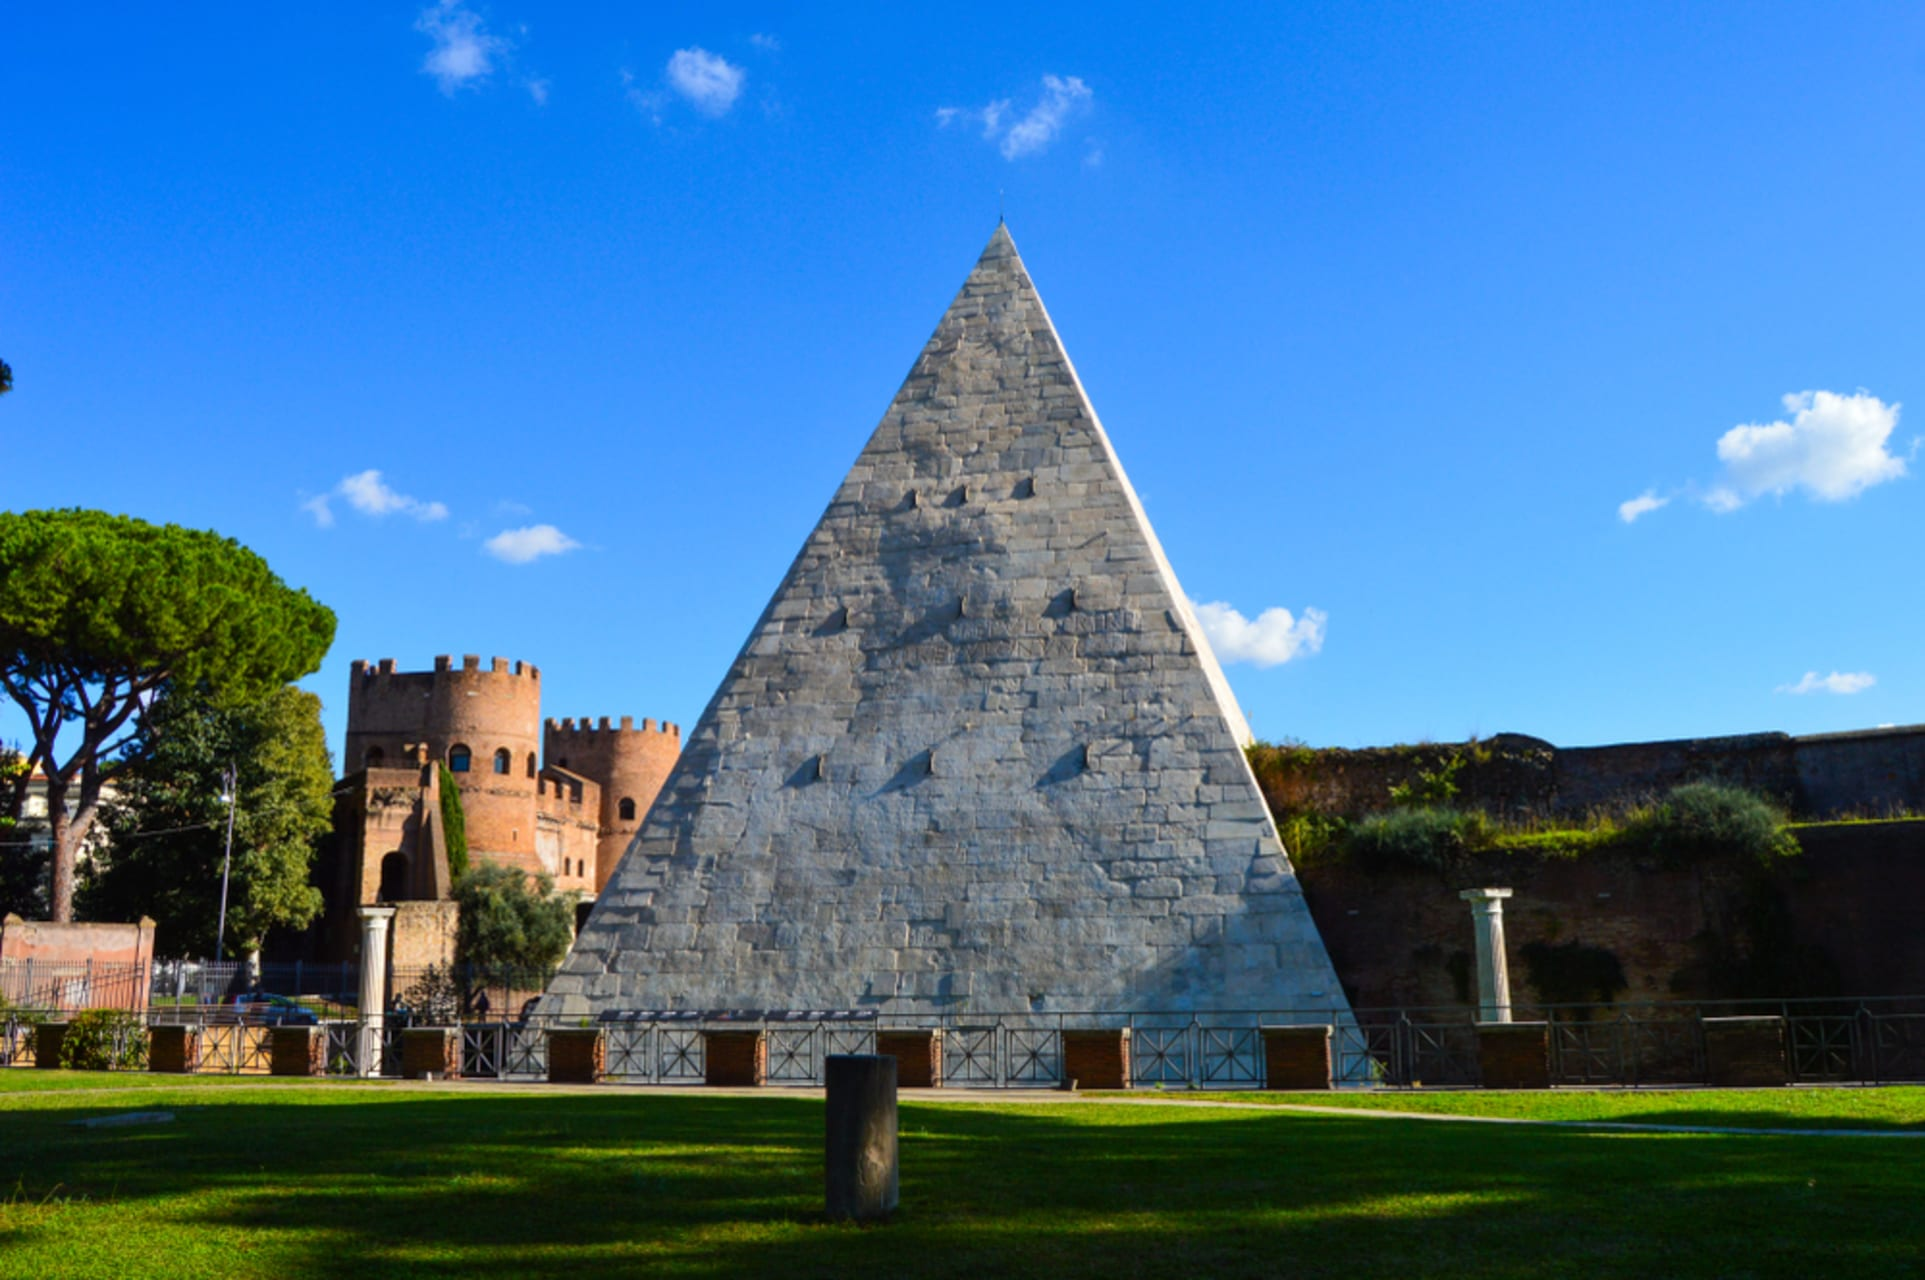 Rome - A car ride to the Pyramid